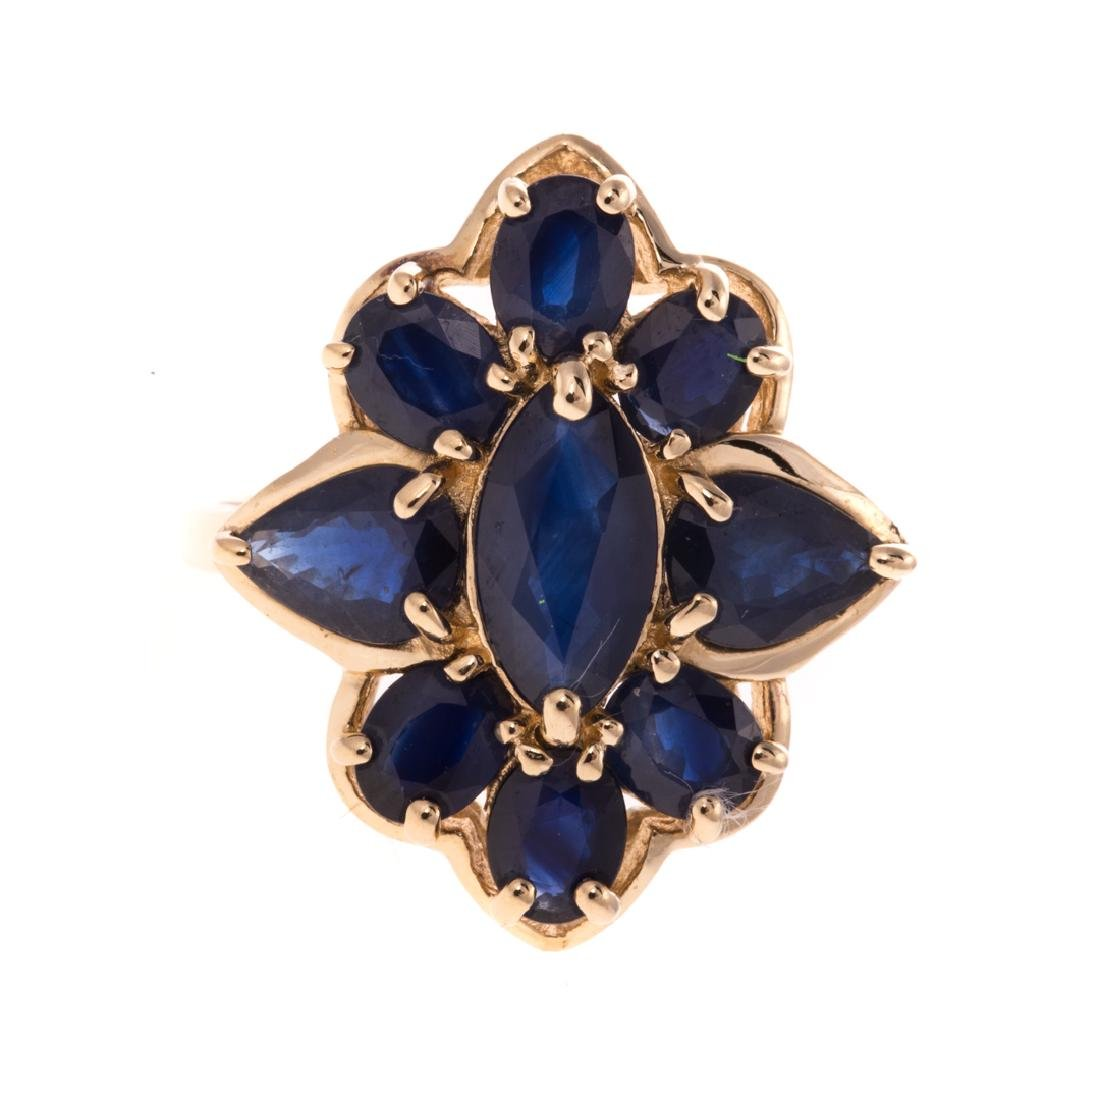 A Lady's Sapphire Ring in 14K Gold